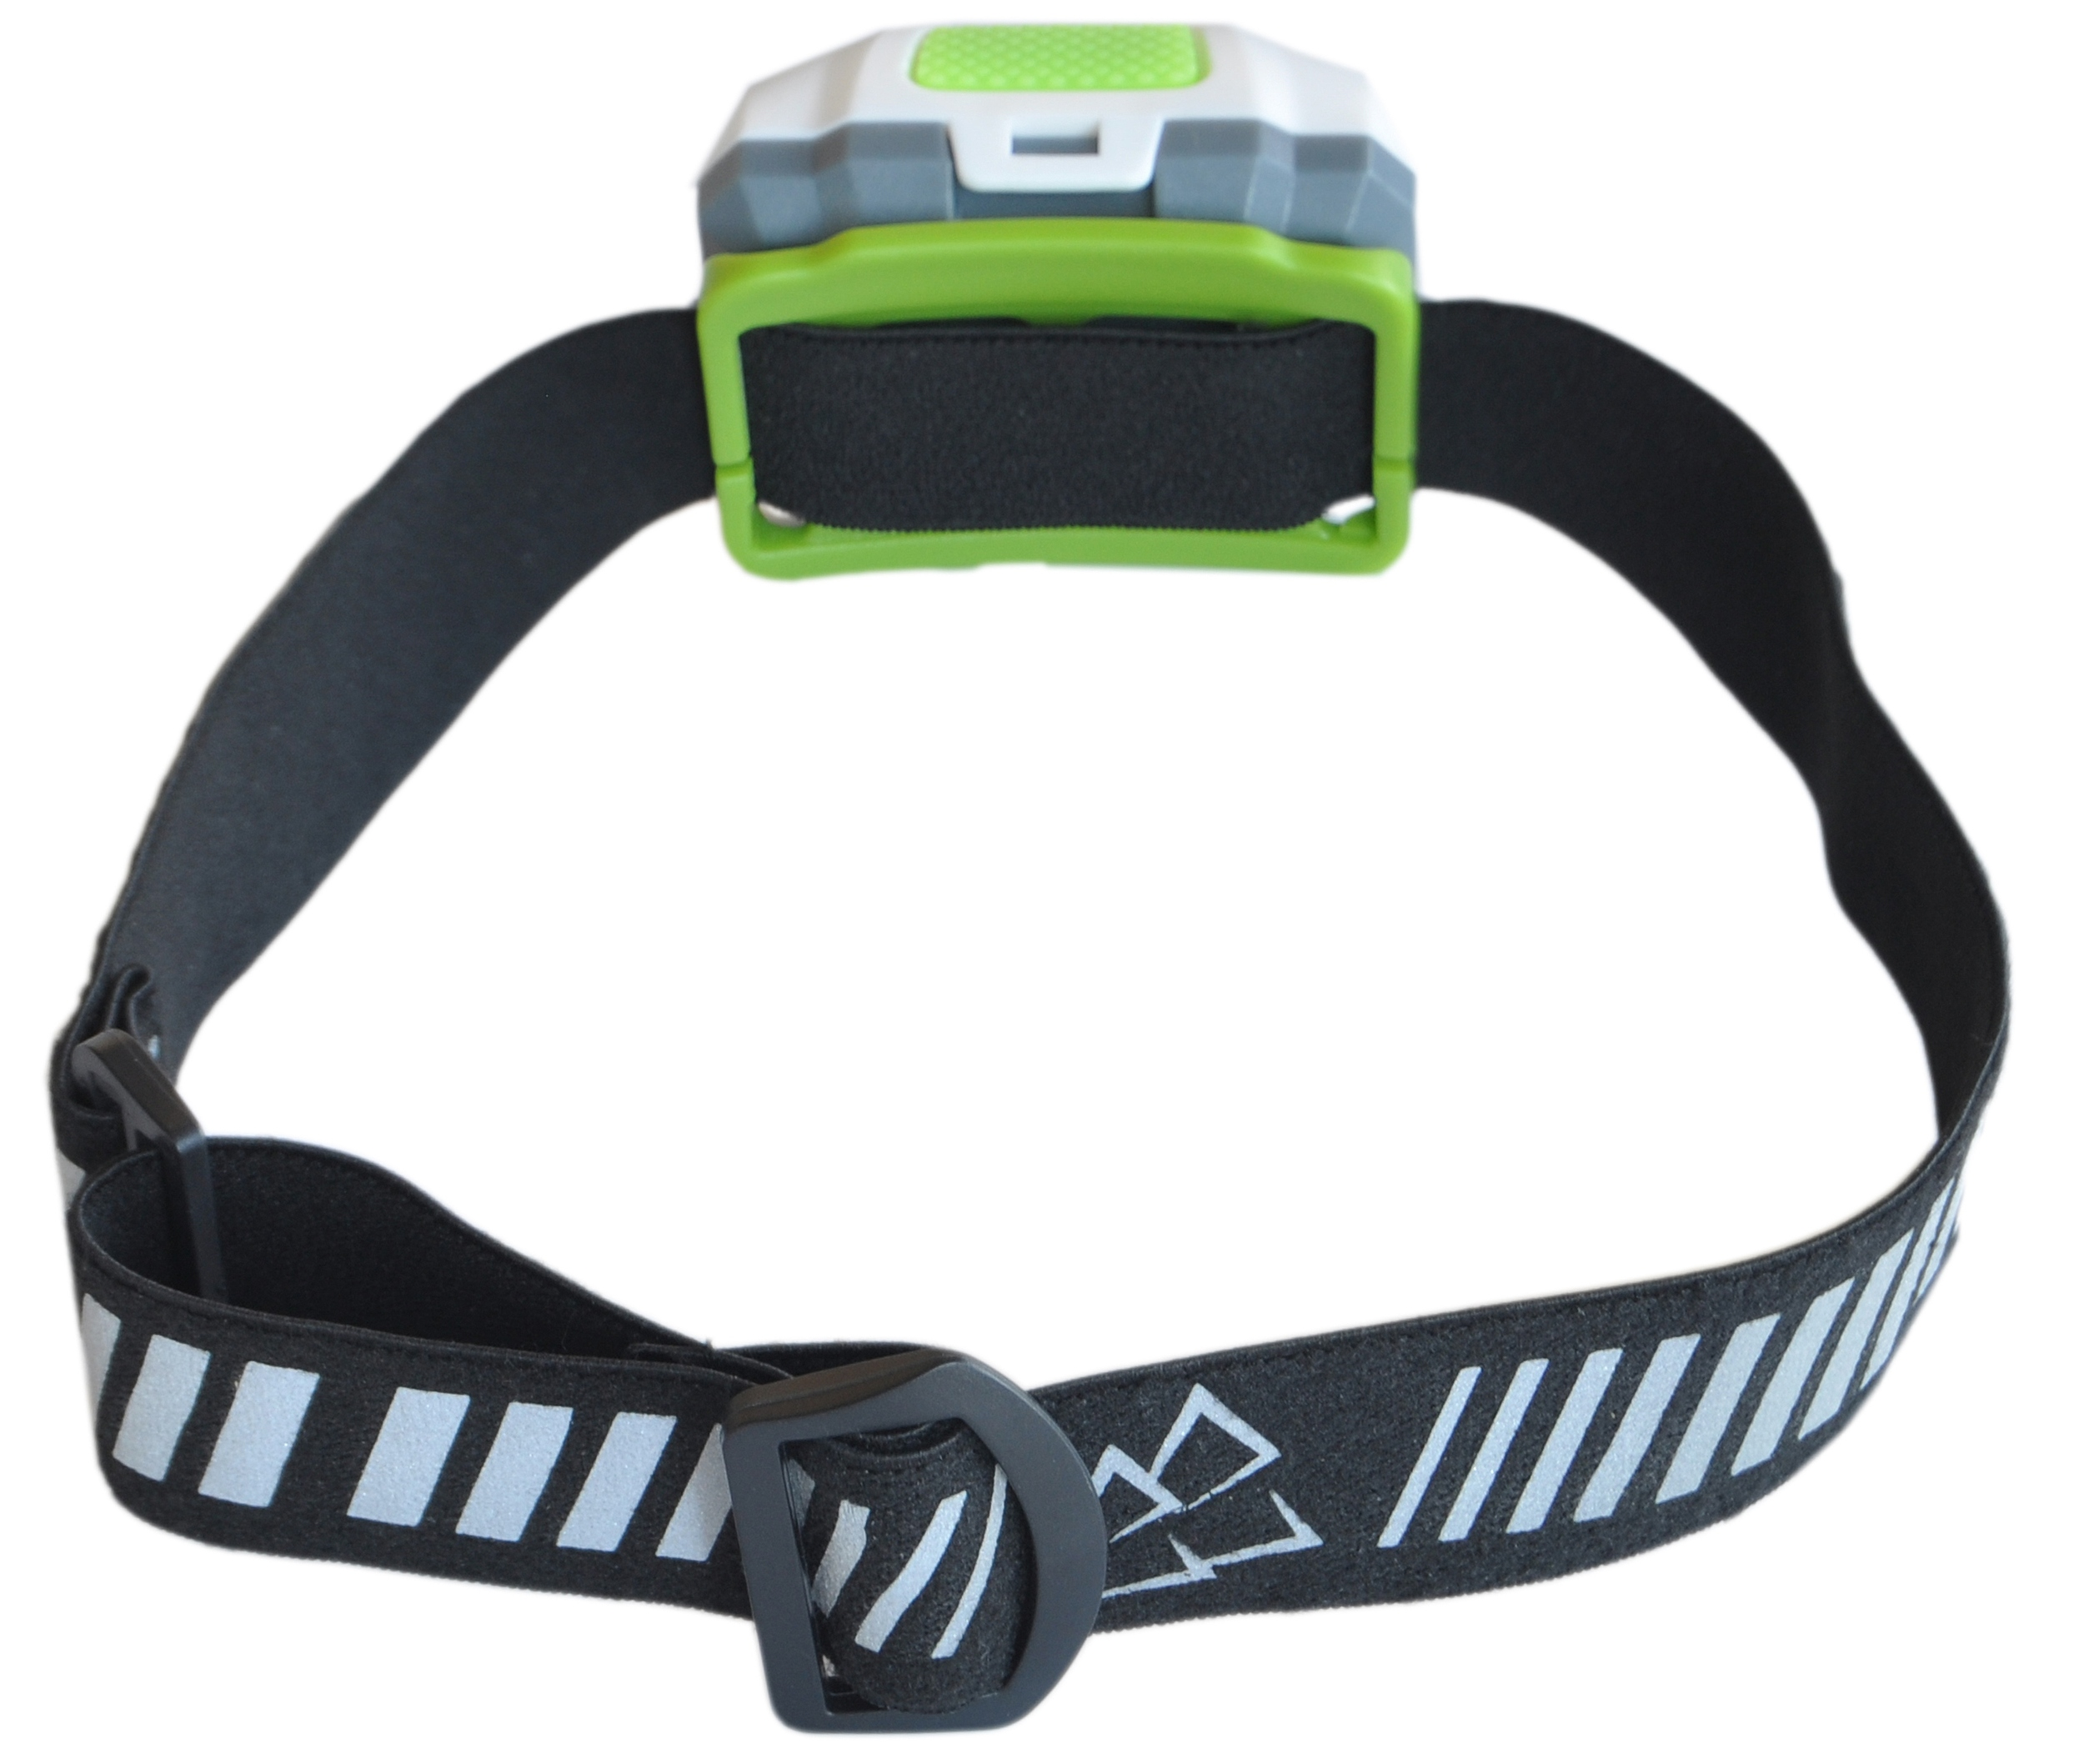 Headlamp5 - back of band.jpg